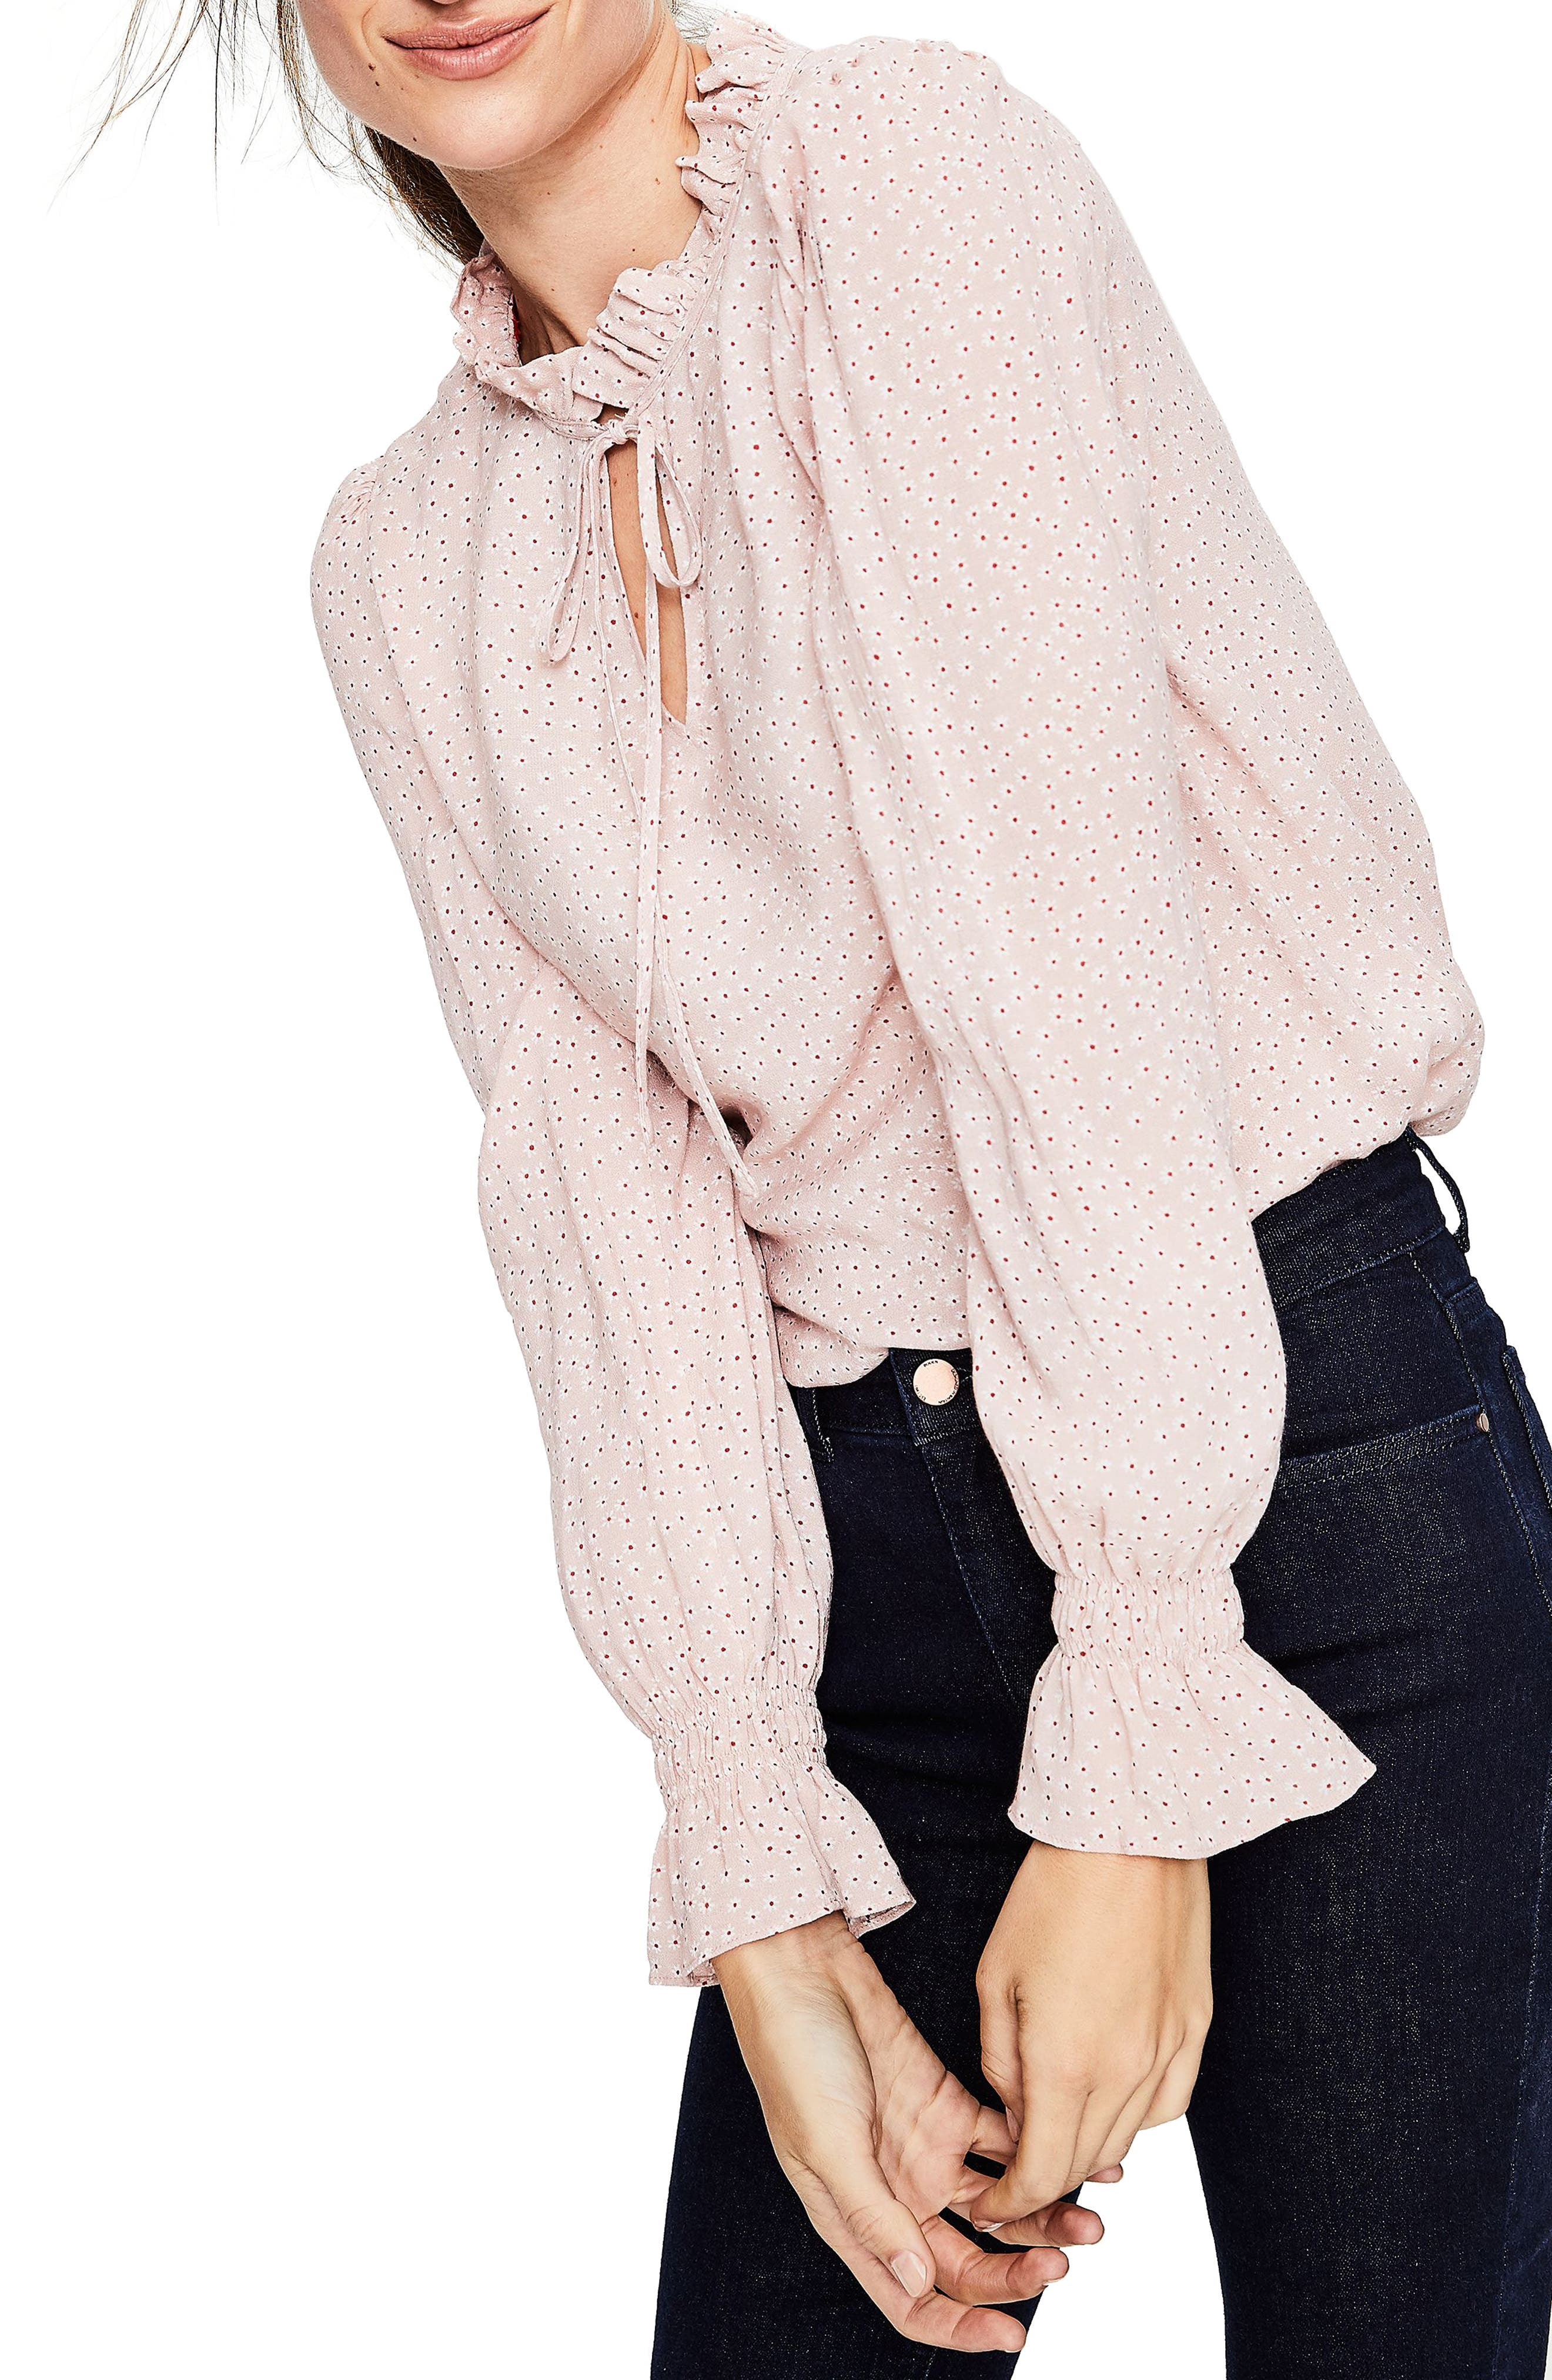 Hotch Potch Ruffled Top,                         Main,                         color, Pink Pearl/ Daisy Sm